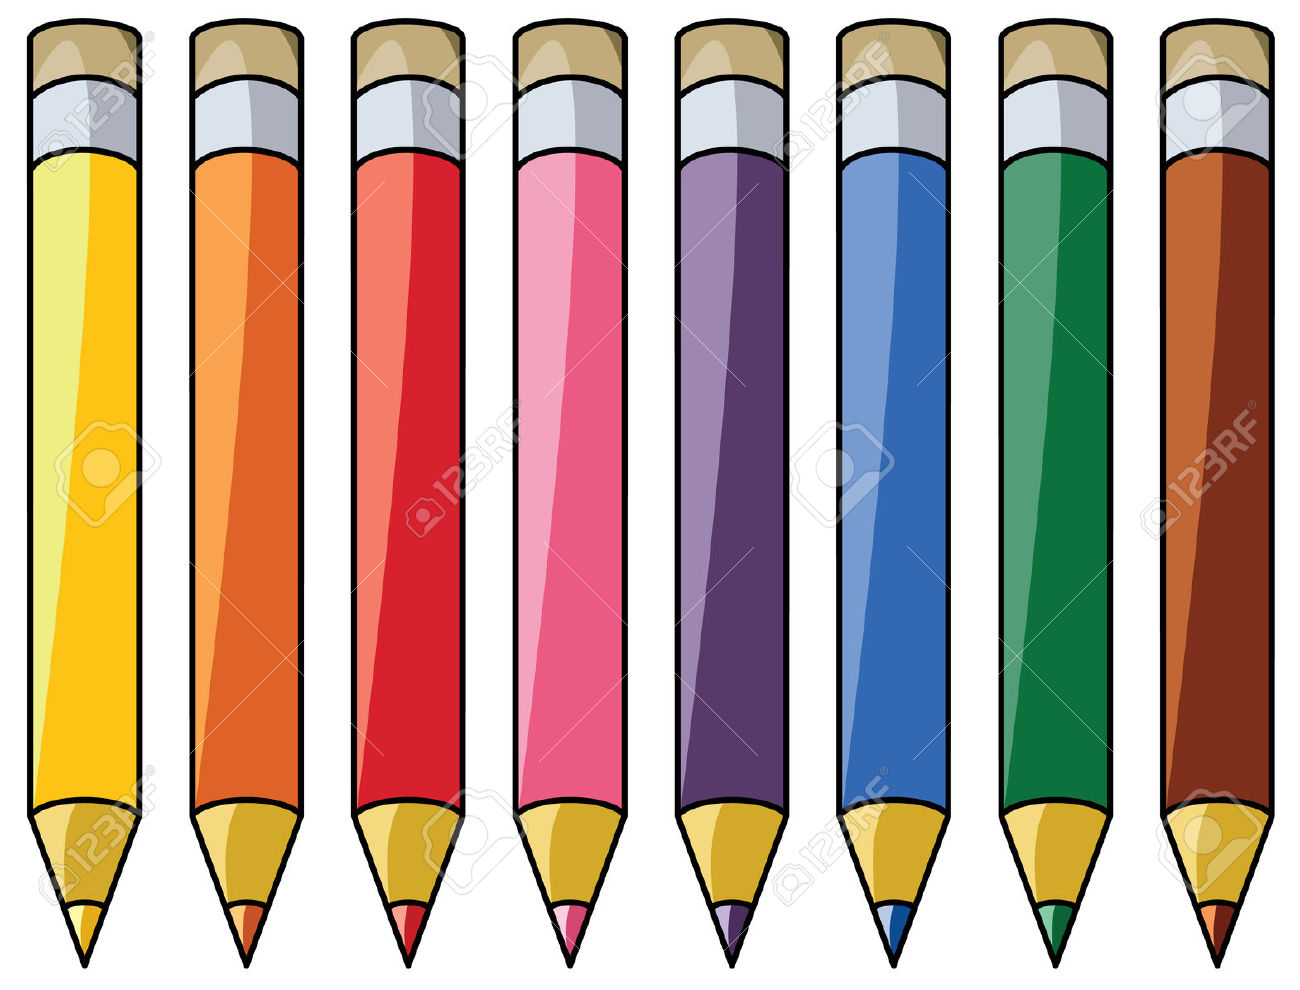 Pencil clipart vector and free download the graphic cave ... (1300 x 990 Pixel)